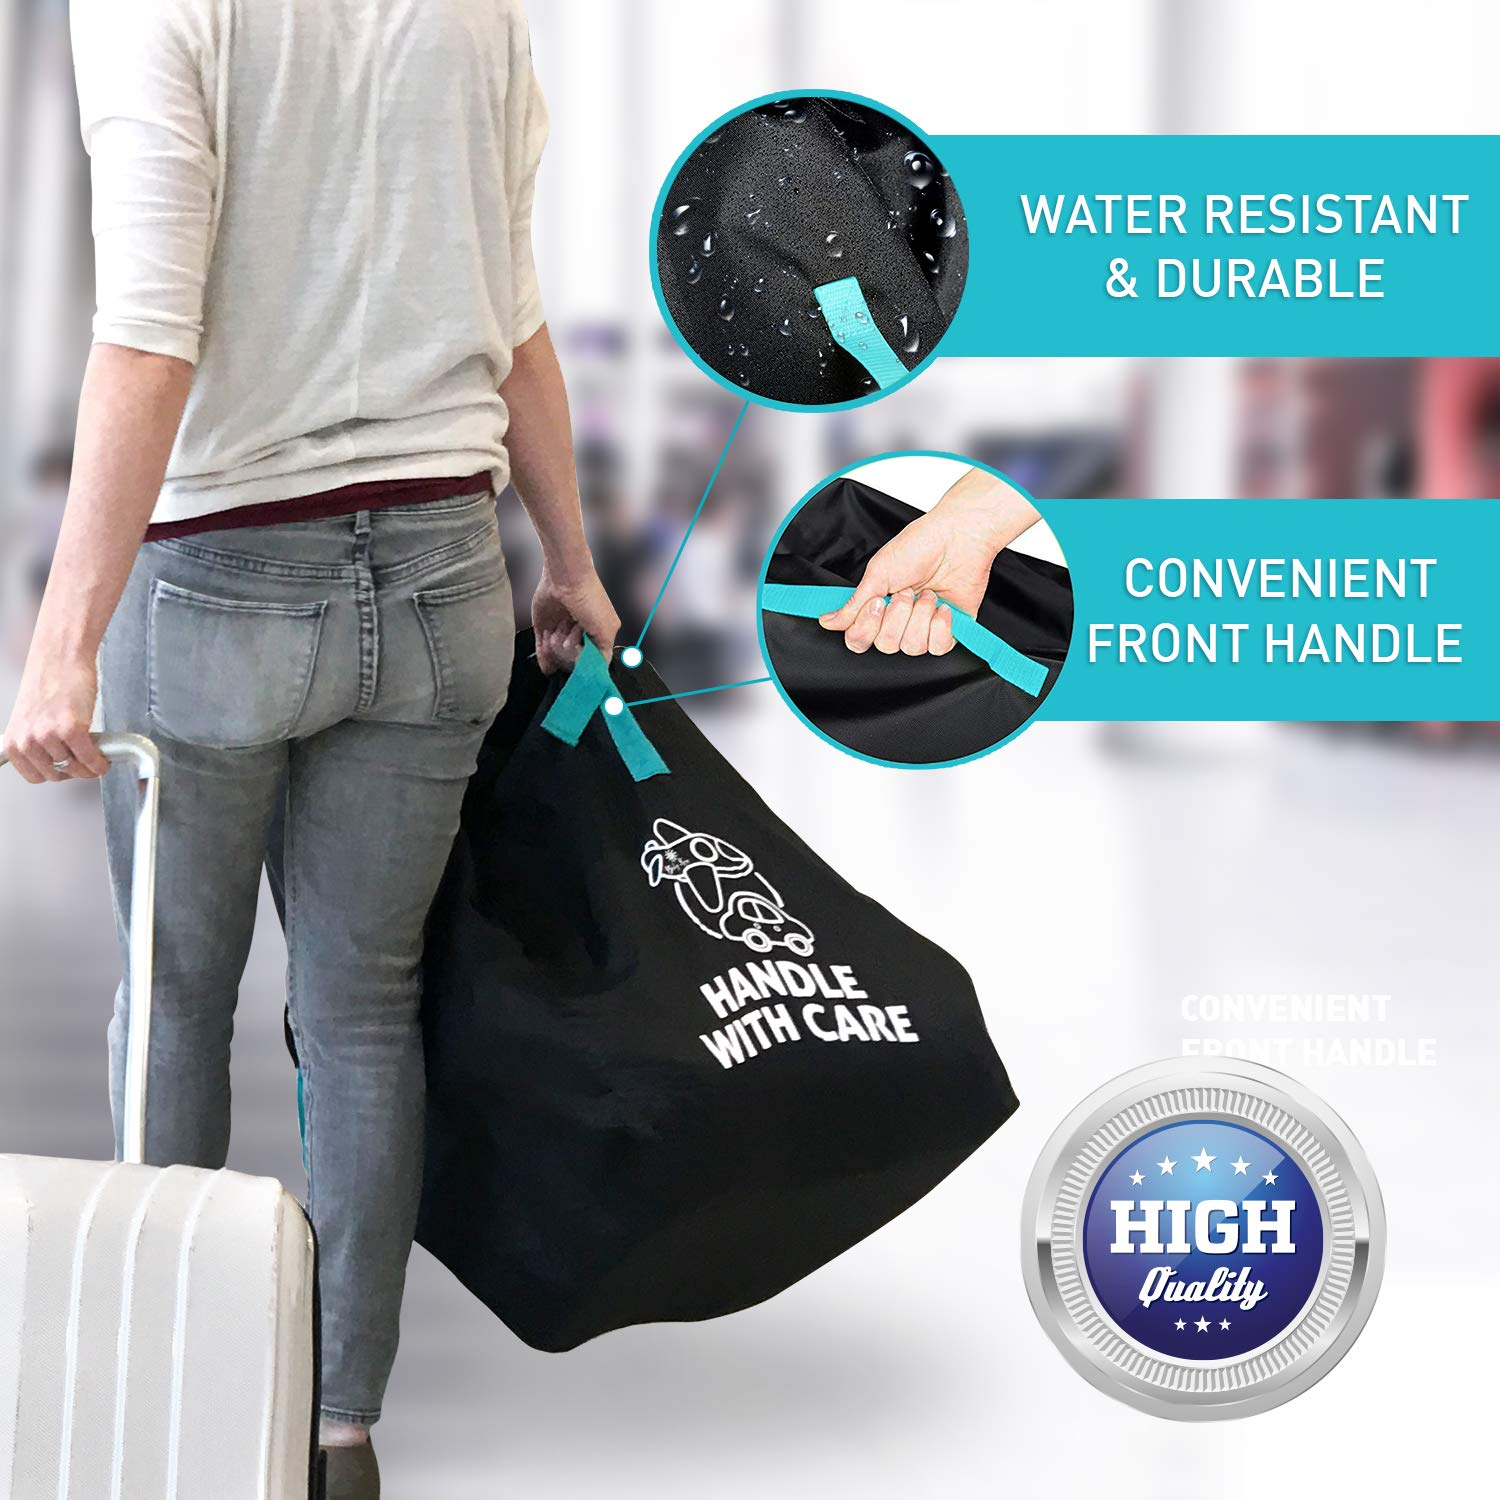 Car Seat Travel Bag for Airplane Cover Carry and Gate Check Your Car Seat